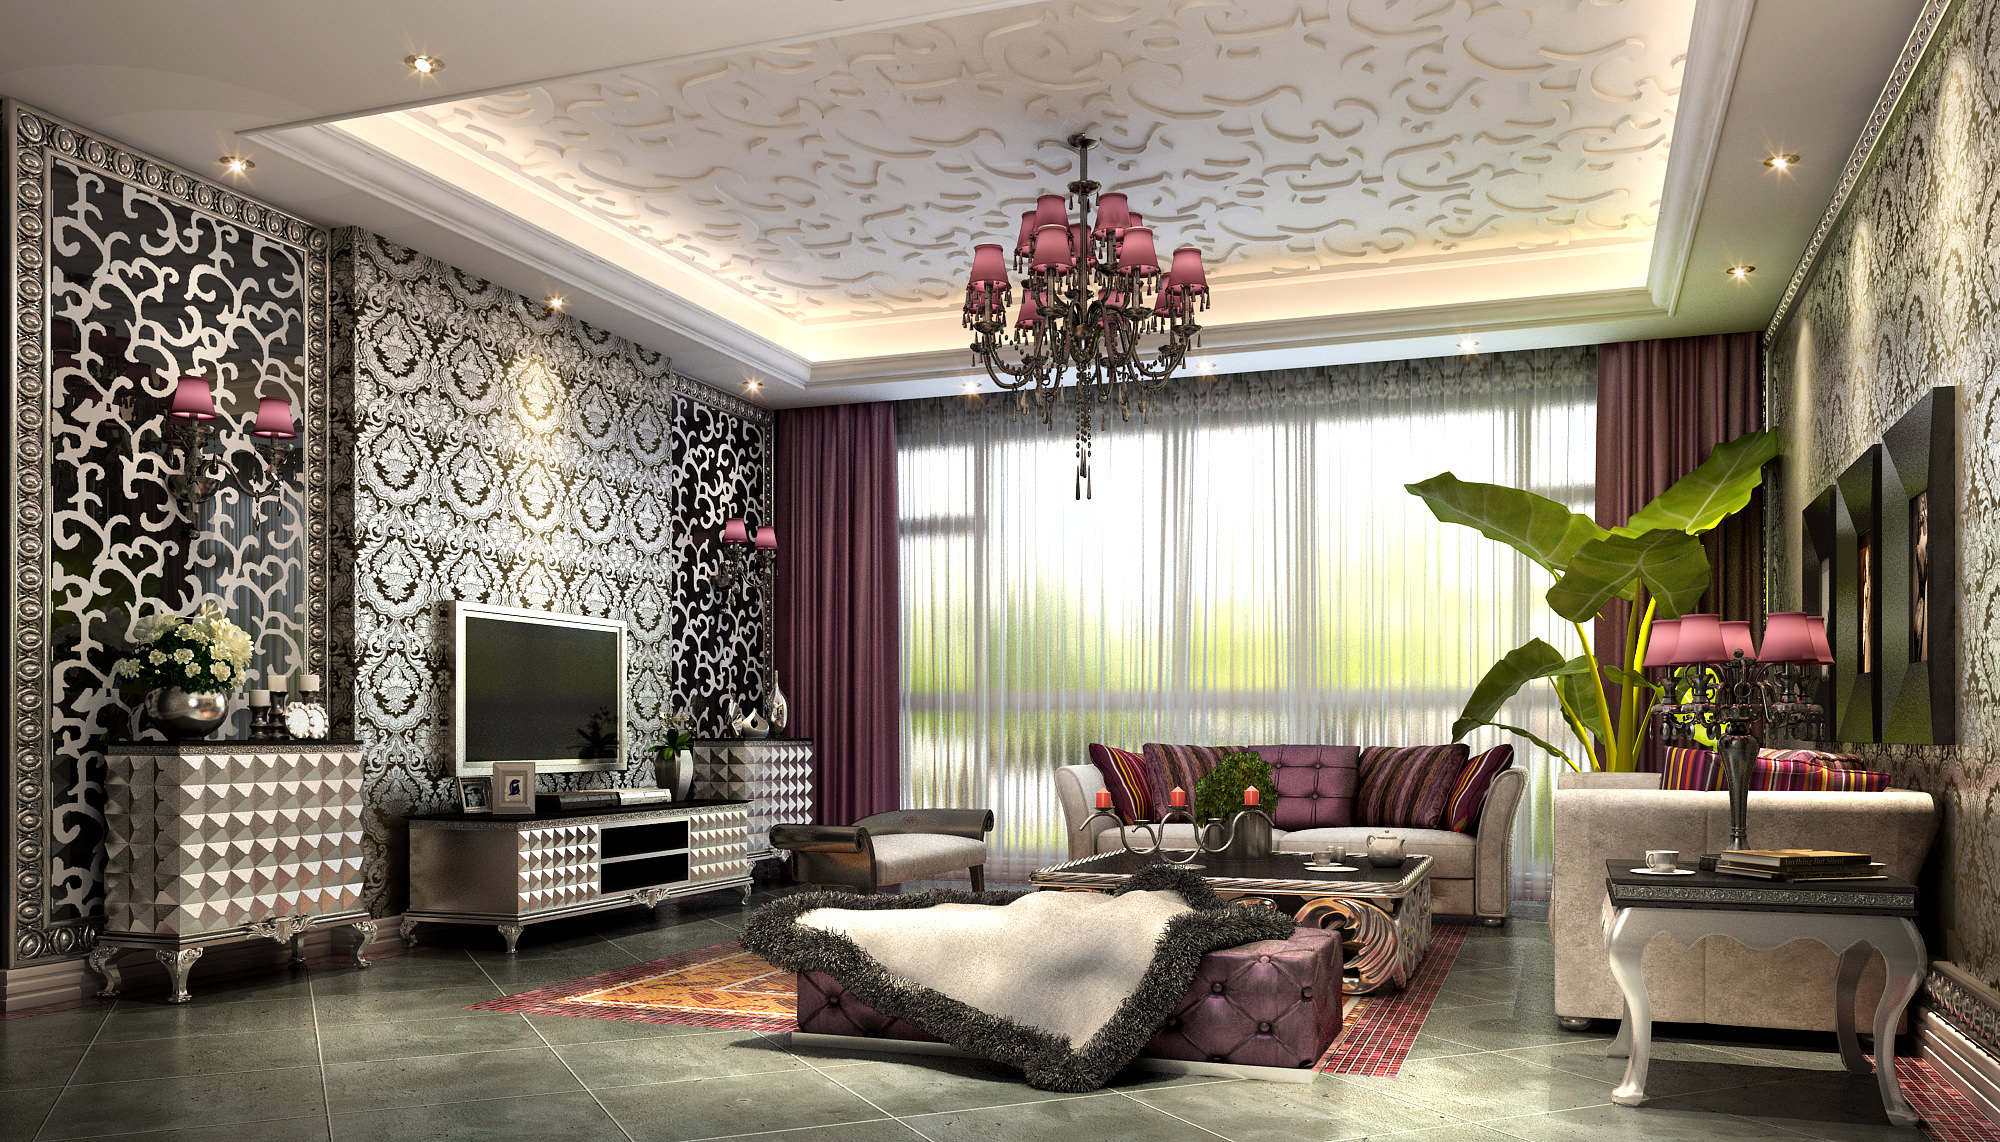 Fancy living room with luxurious wallpapers 3d model max for 3d wallpaper in living room